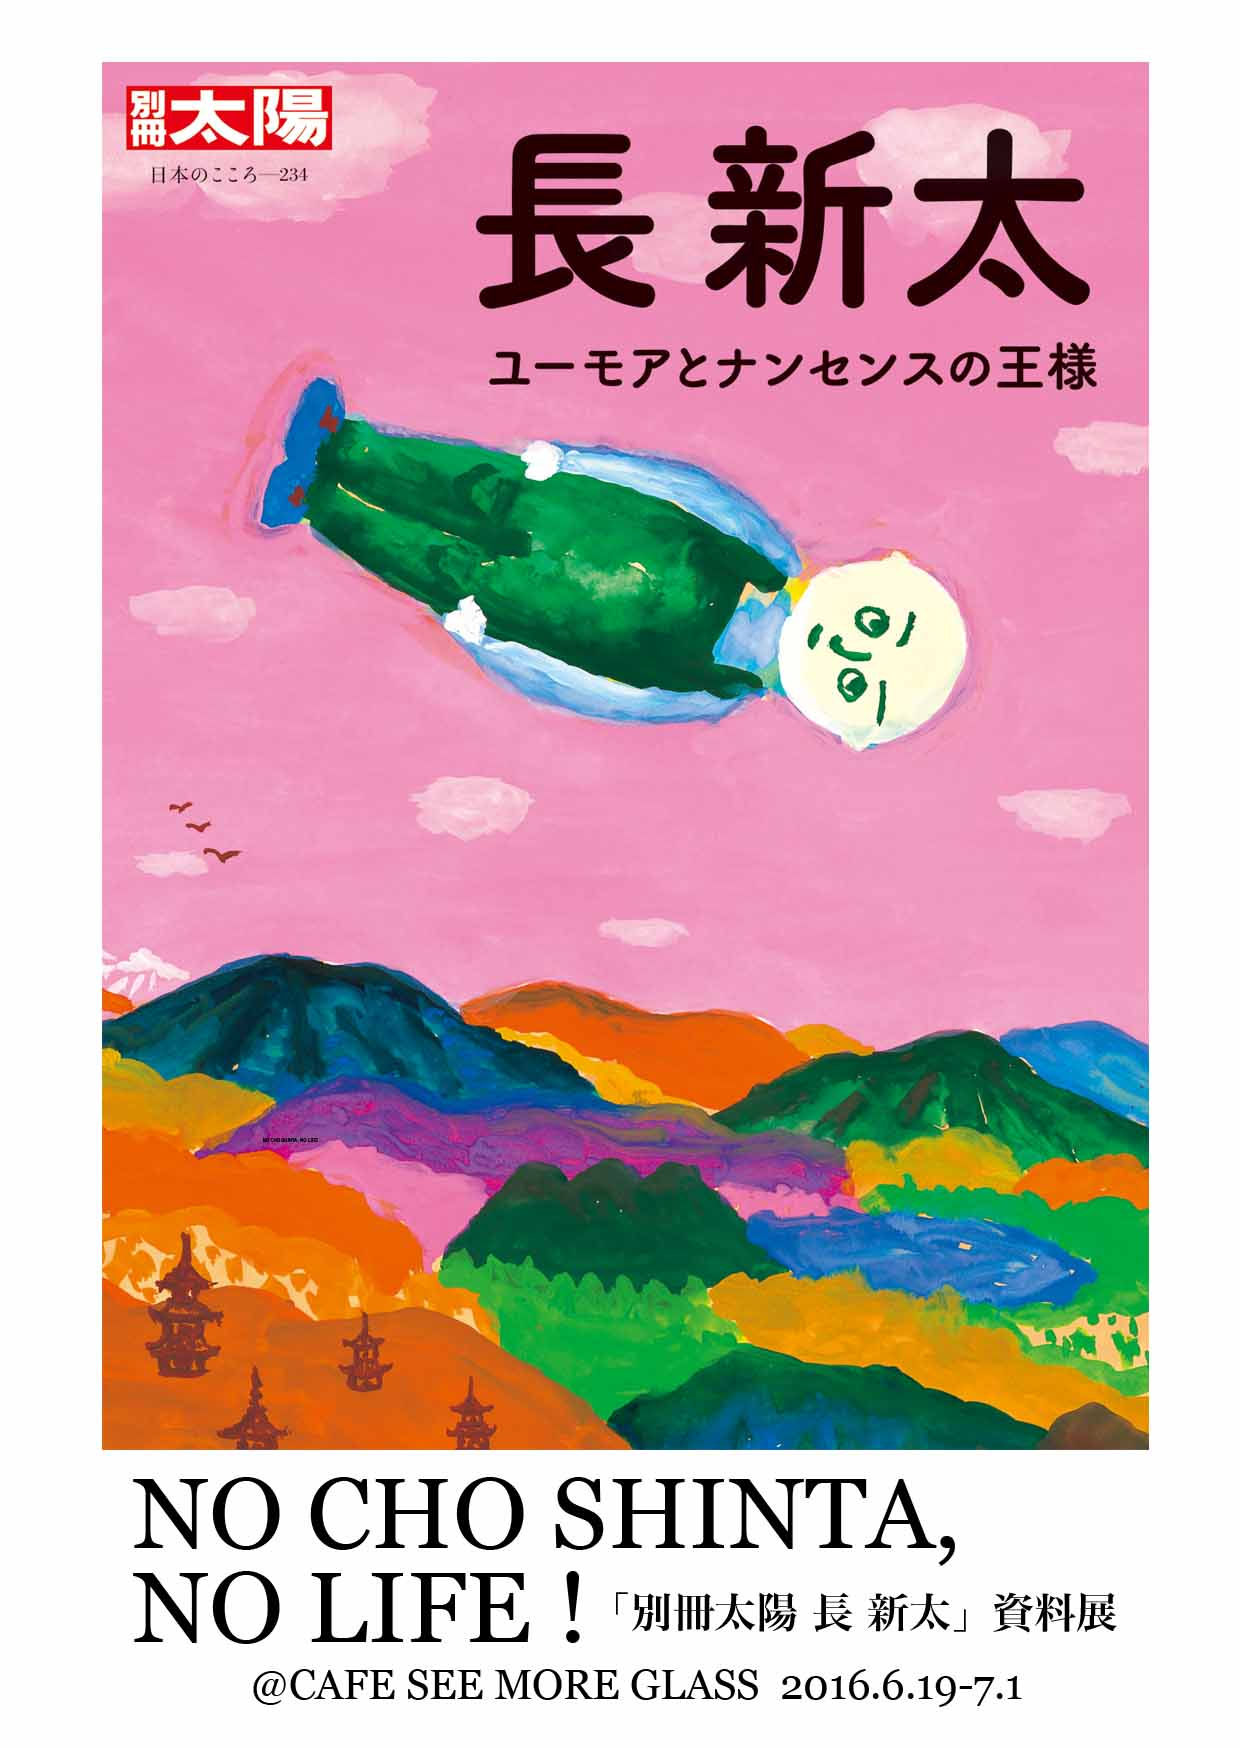 NO CHO SHINTA, NO LIFE ! 「別冊太陽 長 新太」資料展_c0192615_19433940.jpg